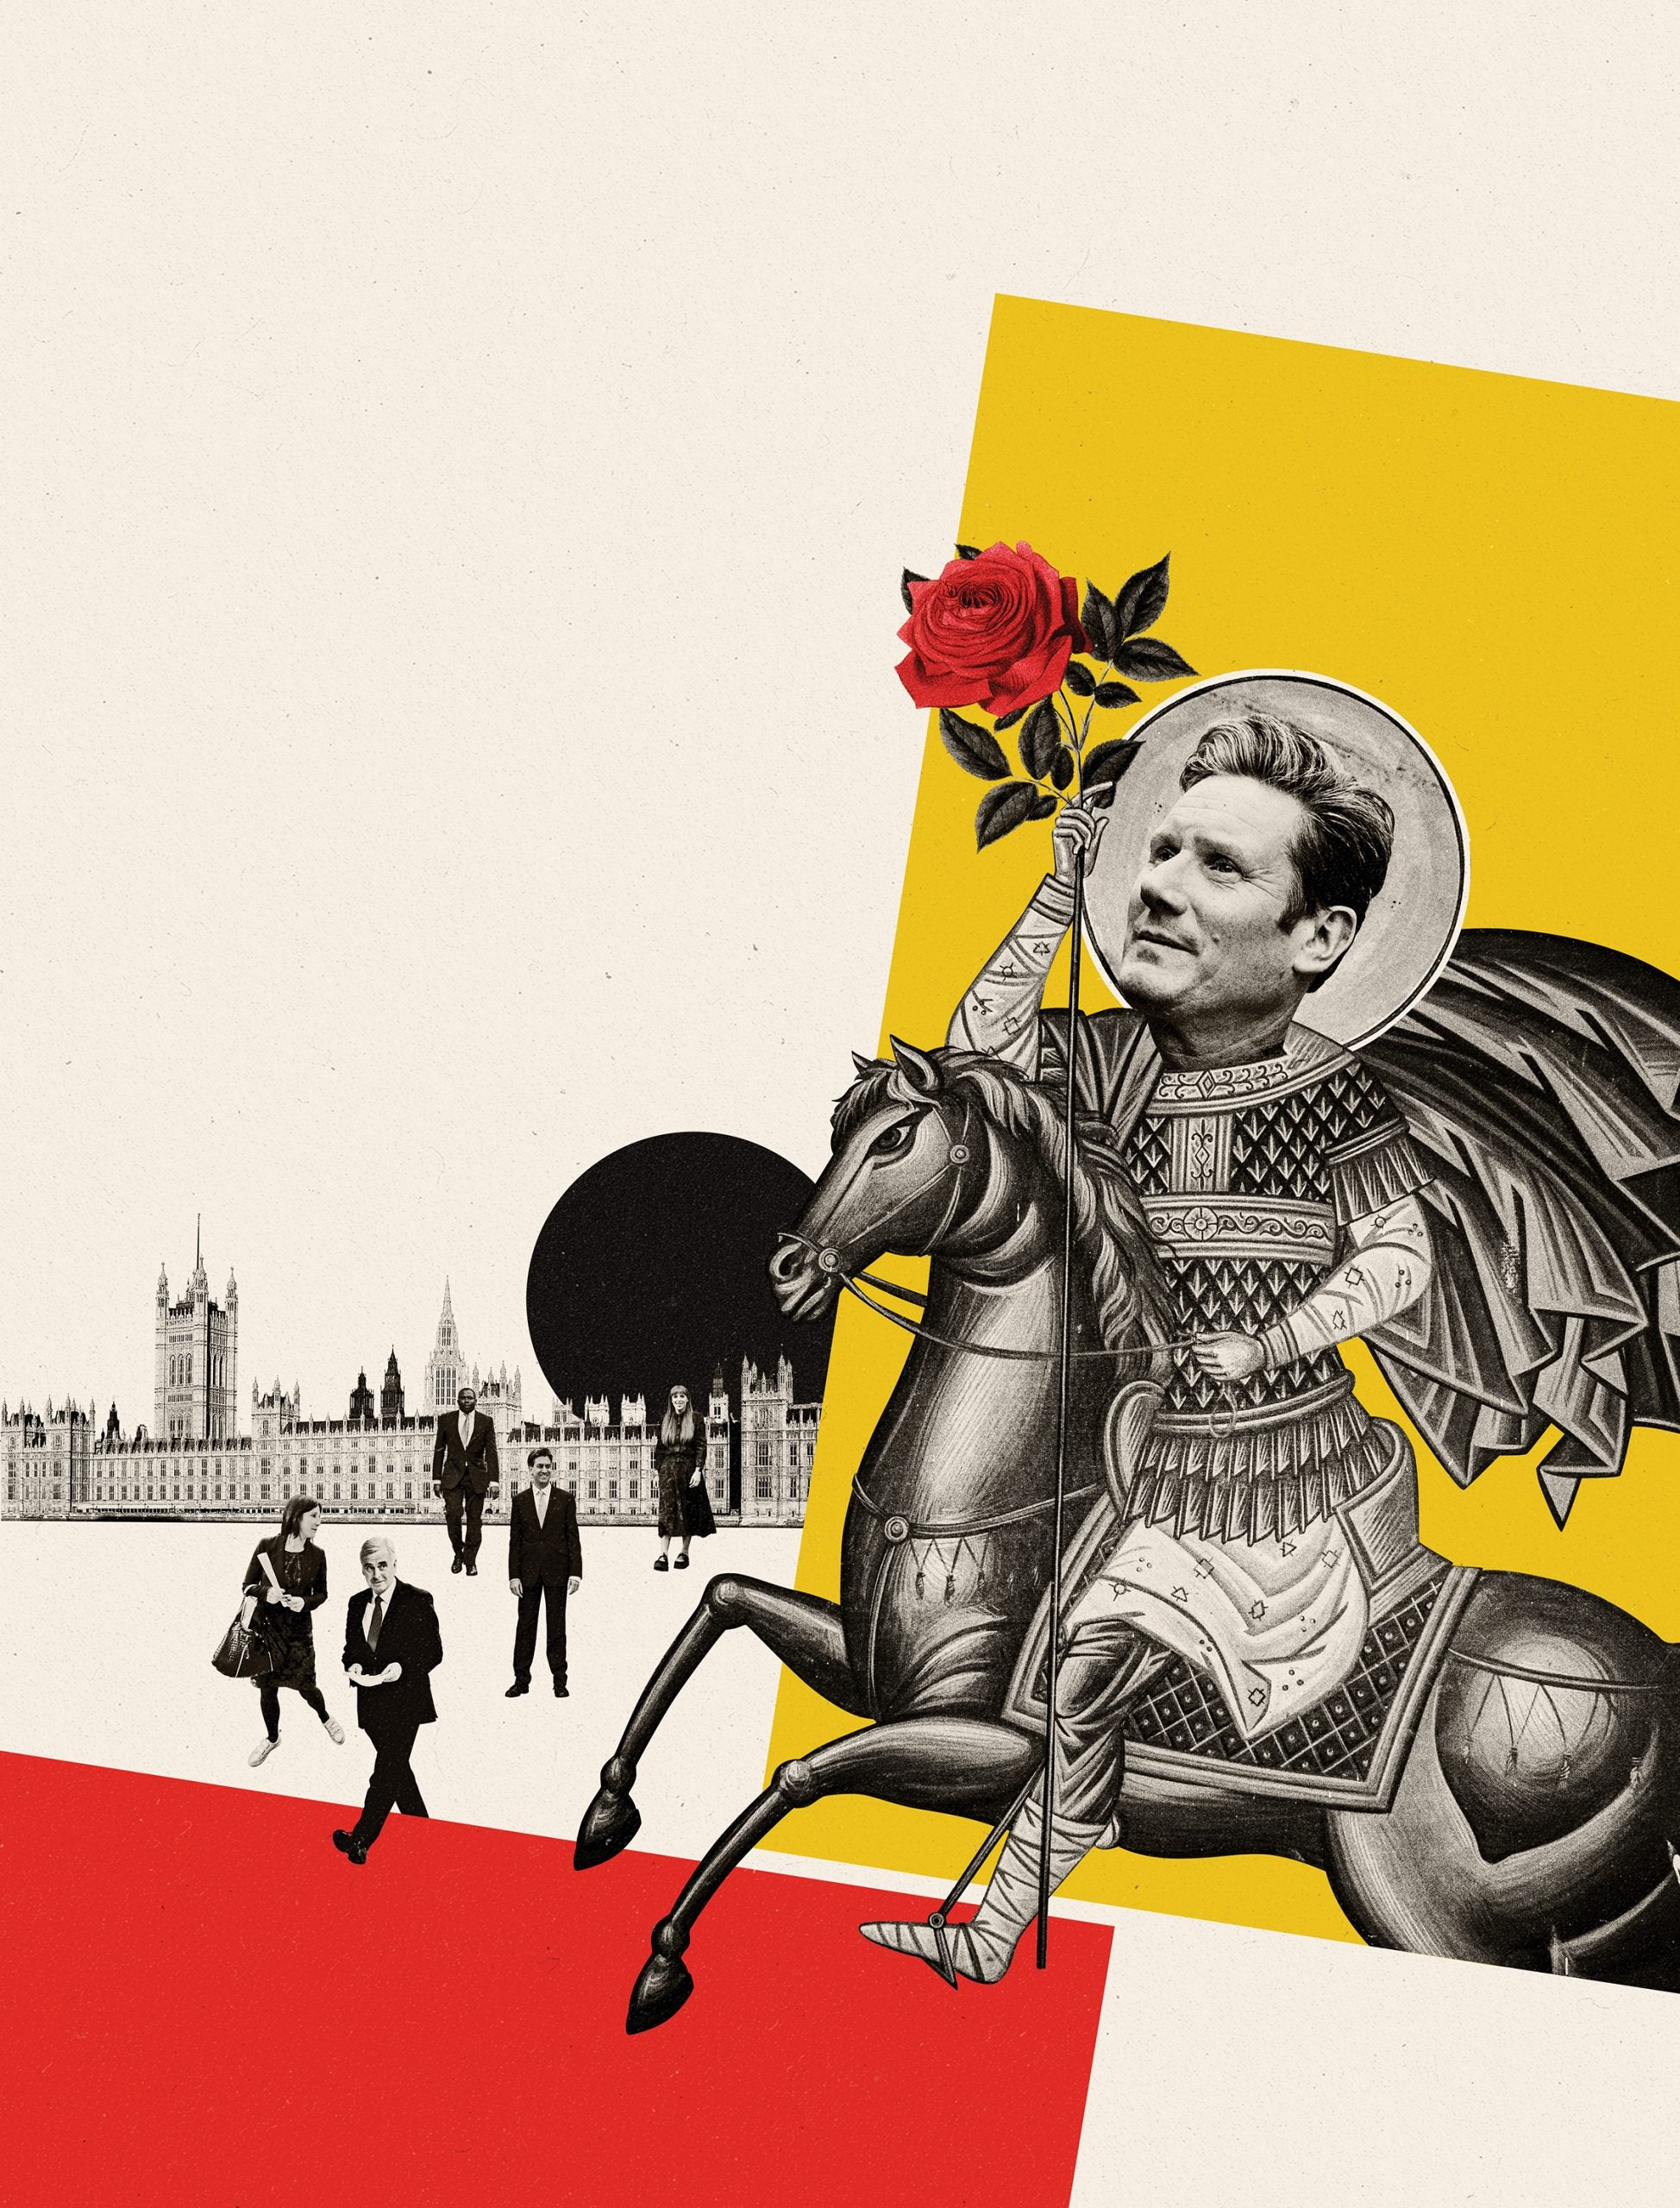 Keir Starmer needs one big, defining idea if he's to avoid being another doomed Labour leader